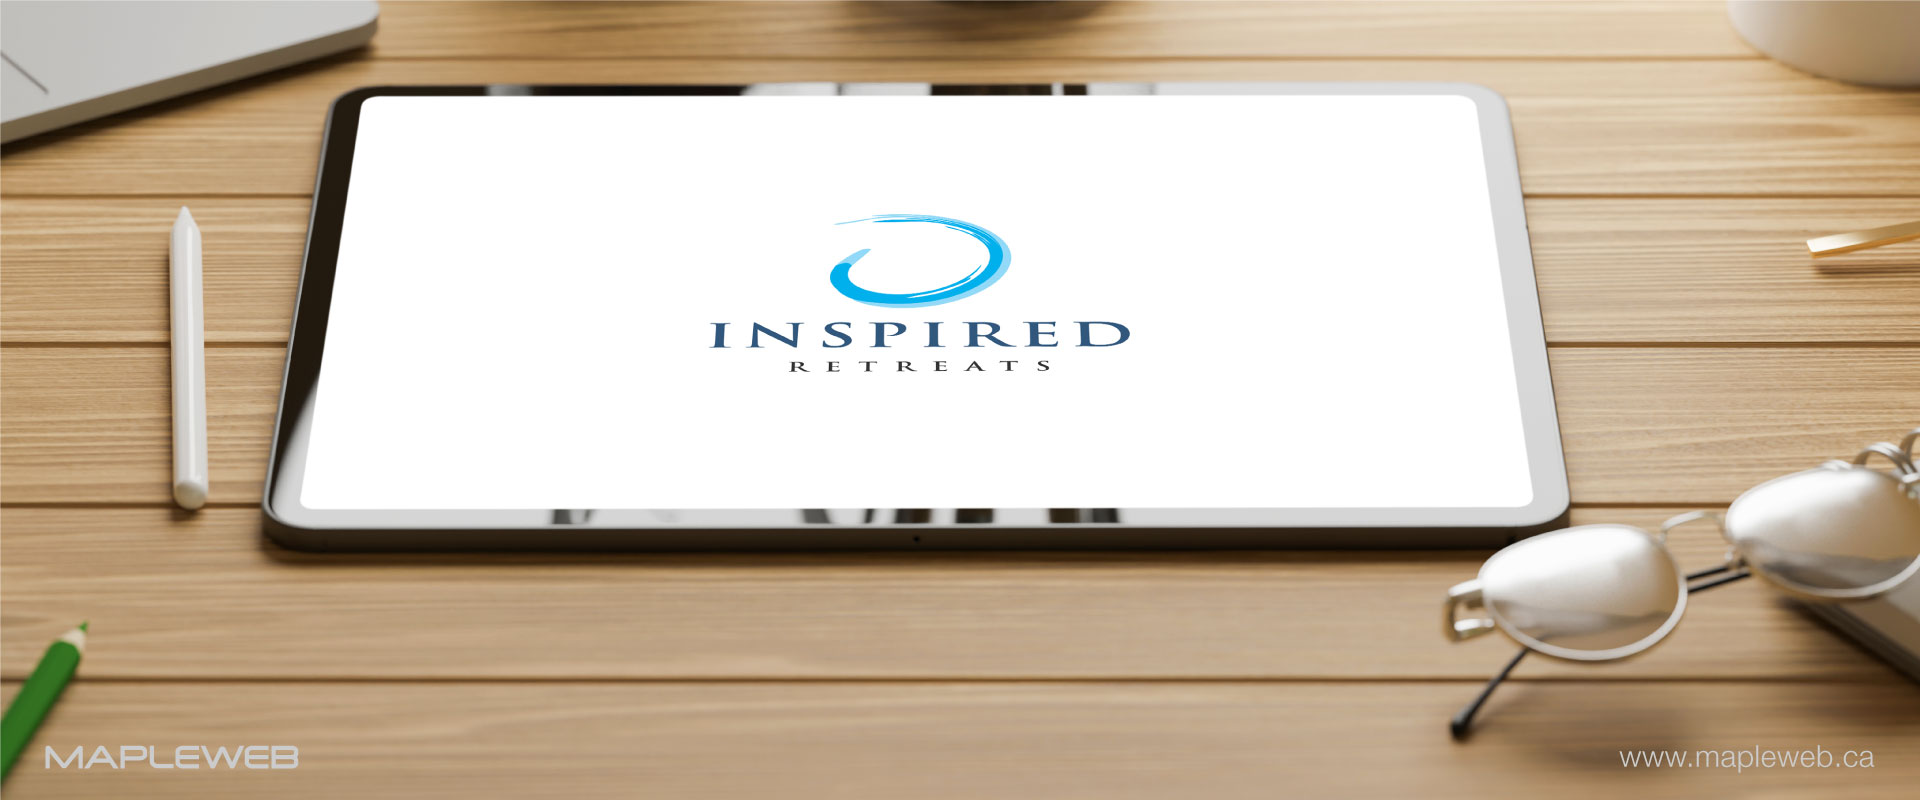 inspired-retreats-brand-logo-design-by-mapleweb-vancouver-canada-tablet-mock